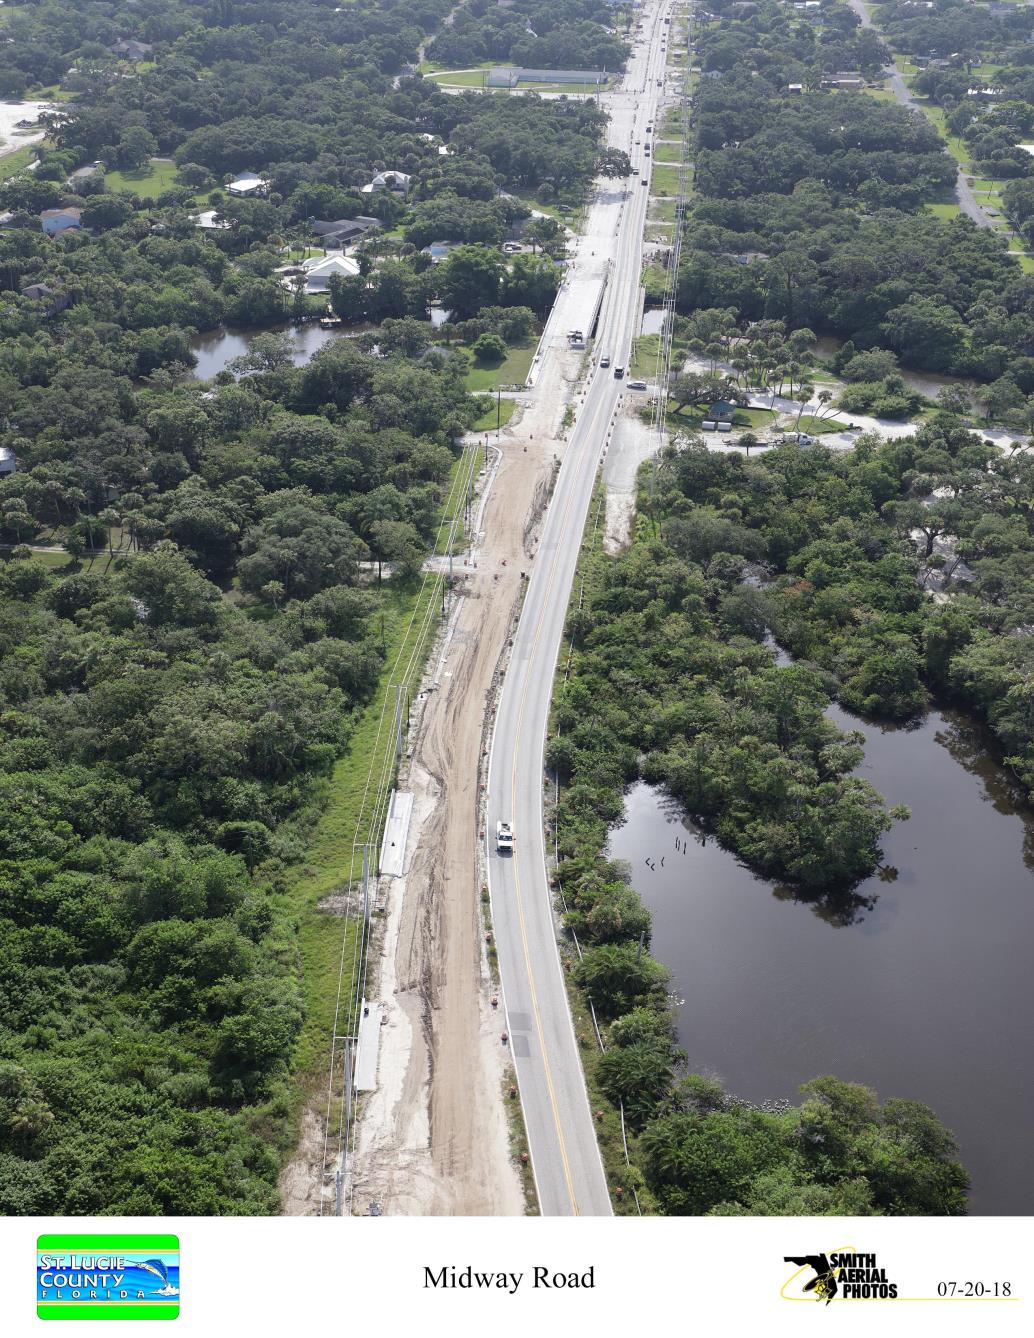 Midway Rd looking East toward St. Lucie River